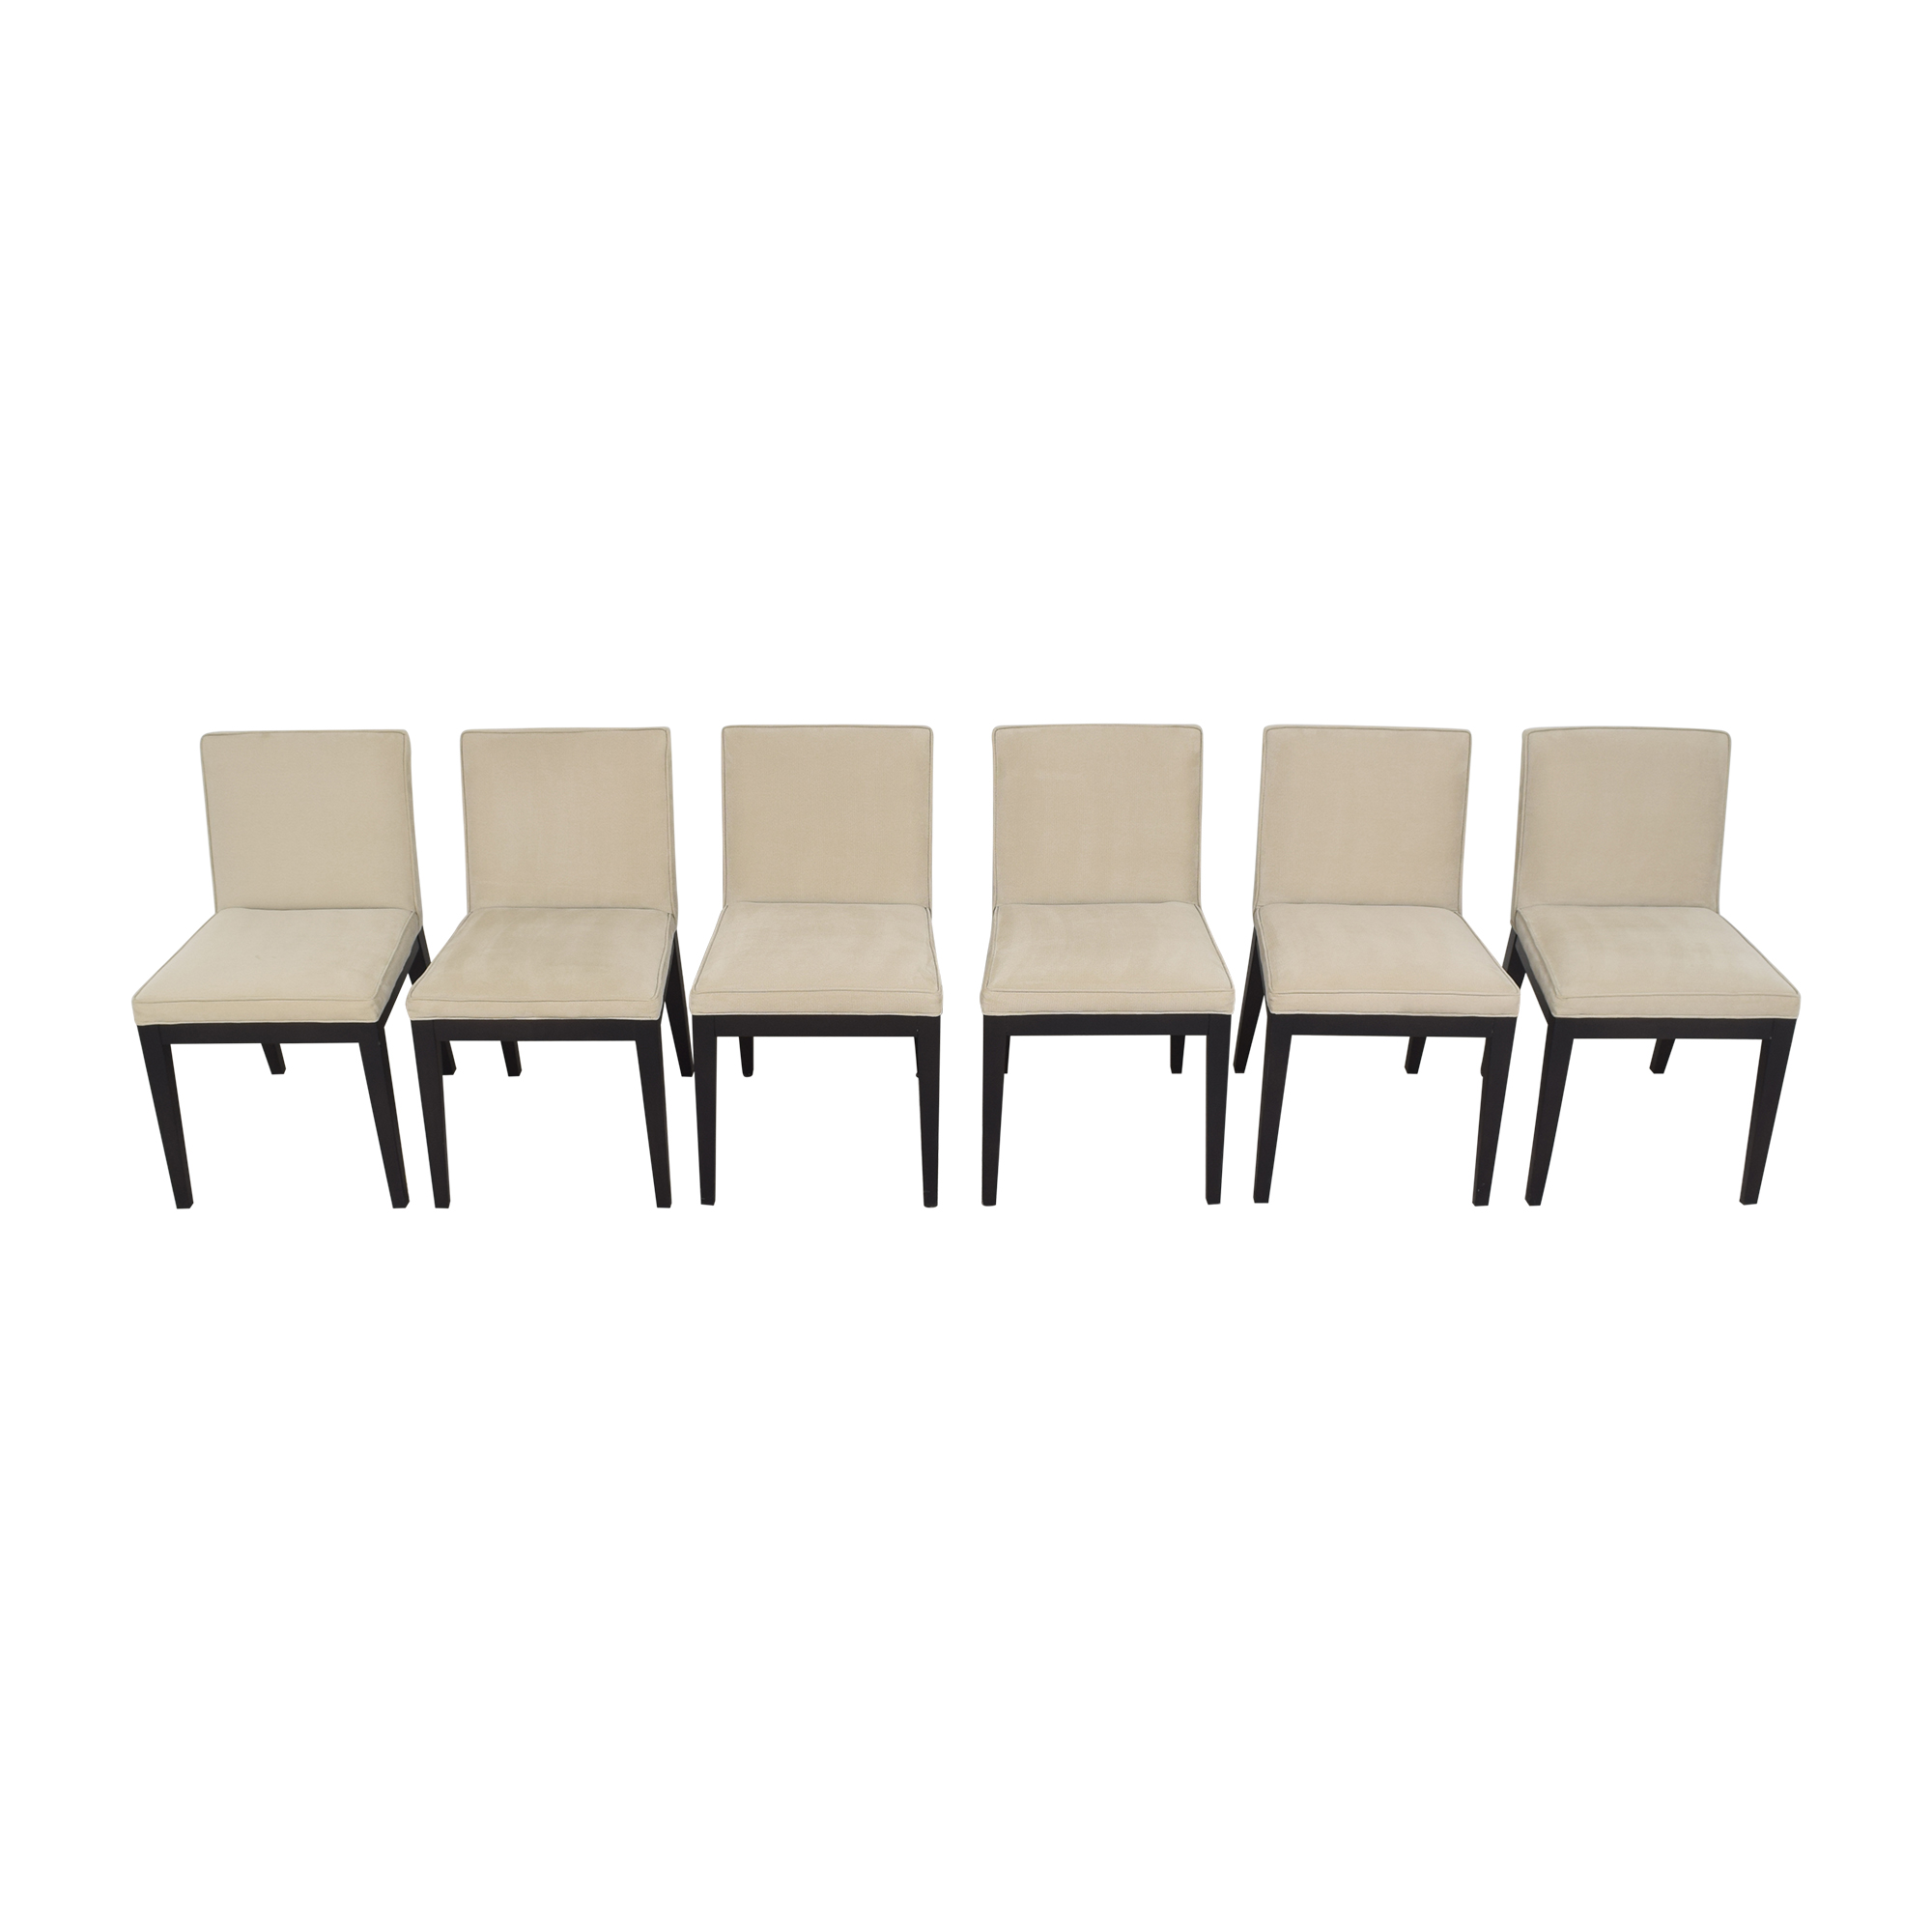 Room & Board Room & Board Ansel Dining Chairs ma